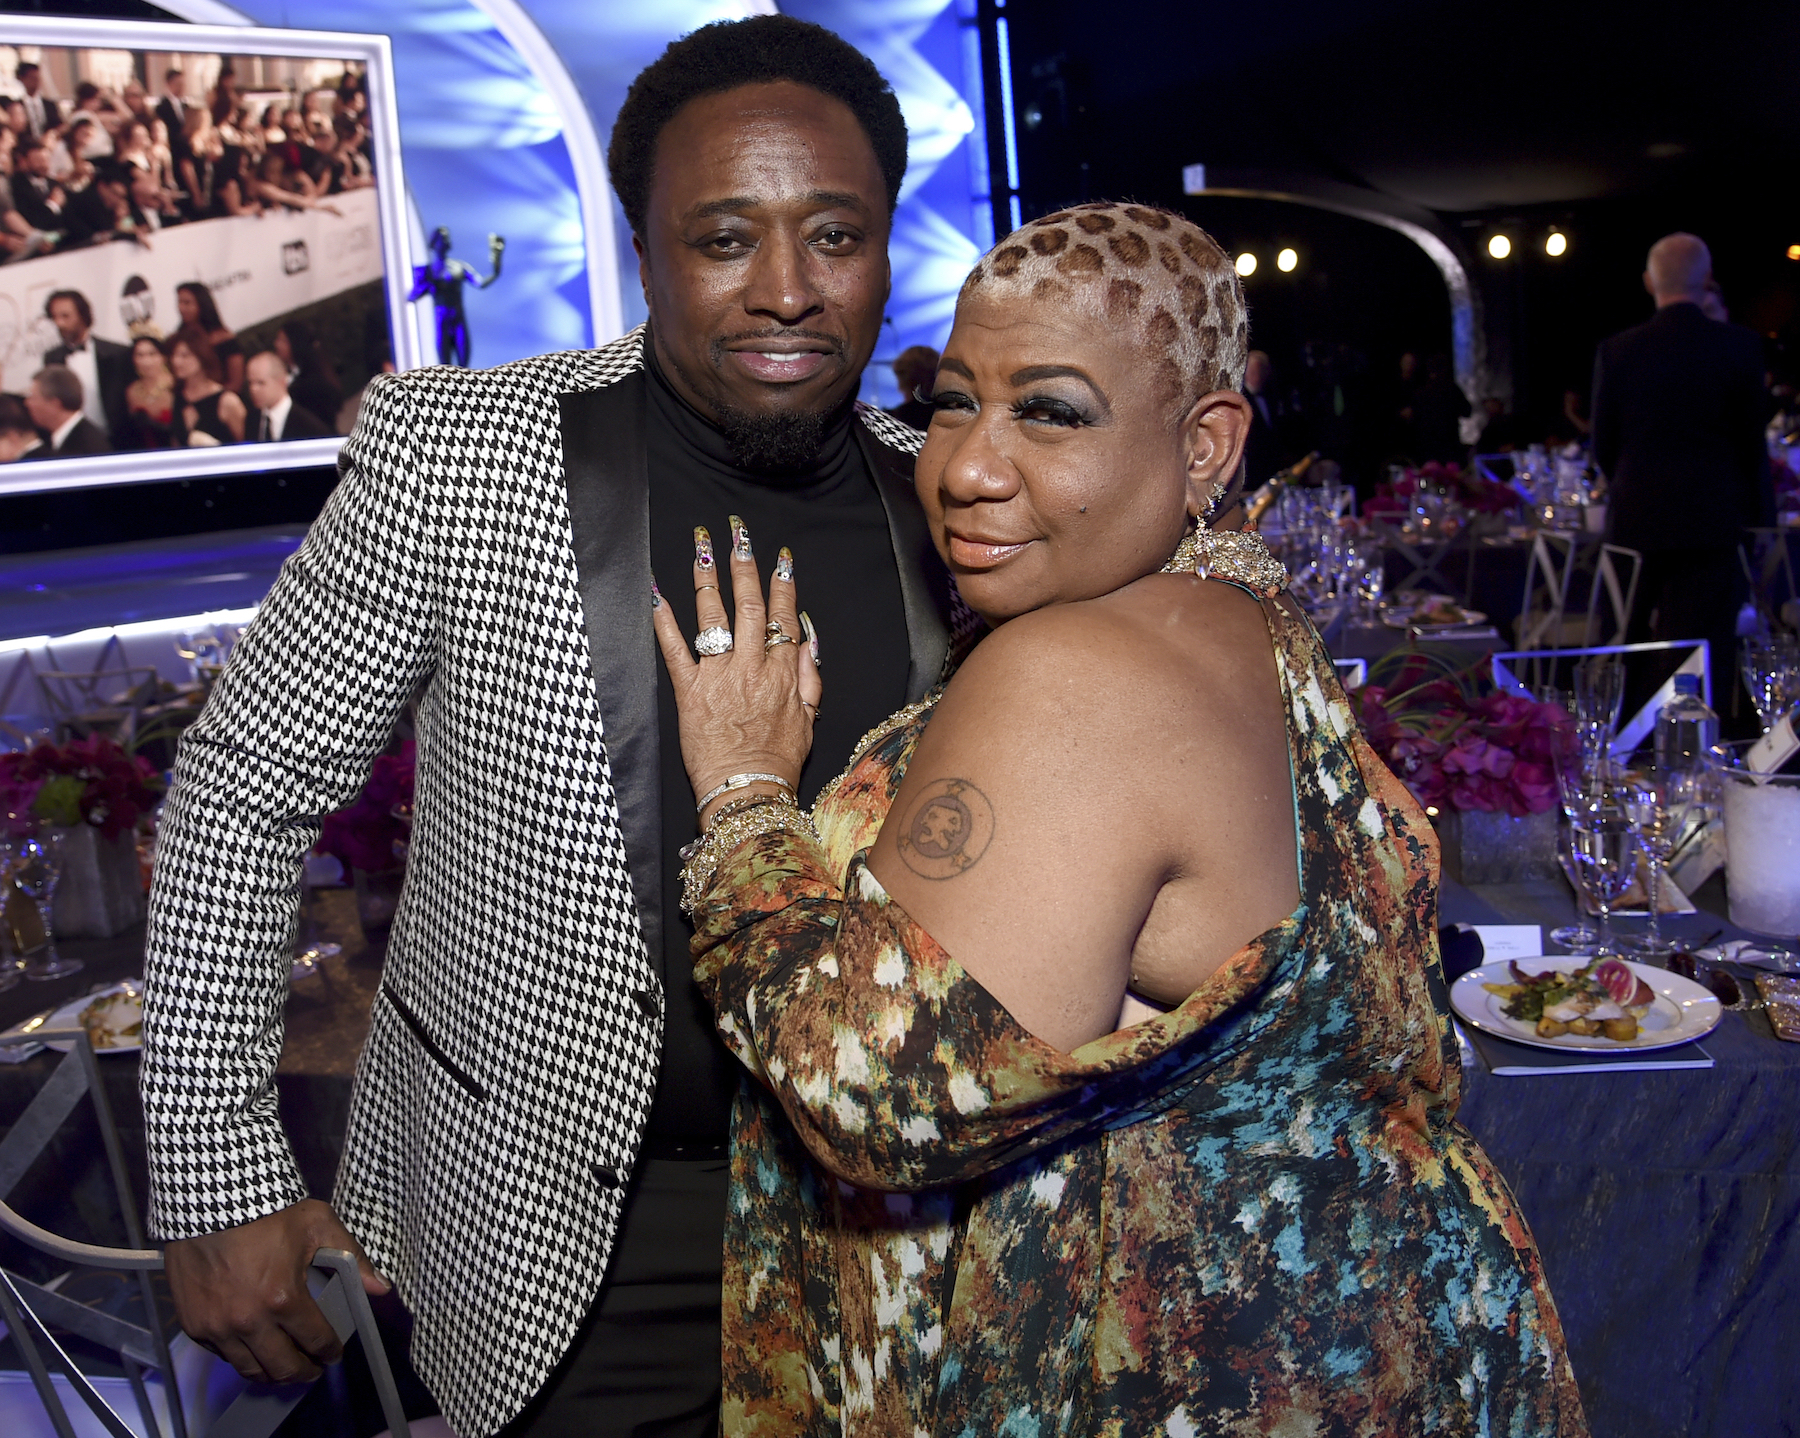 <div class='meta'><div class='origin-logo' data-origin='AP'></div><span class='caption-text' data-credit='Richard Shotwell/Invision/AP'>Eddie Griffin, left and Luenell attends the 25th annual Screen Actors Guild Awards at the Shrine Auditorium & Expo Hall on Sunday, Jan. 27, 2019, in Los Angeles.</span></div>